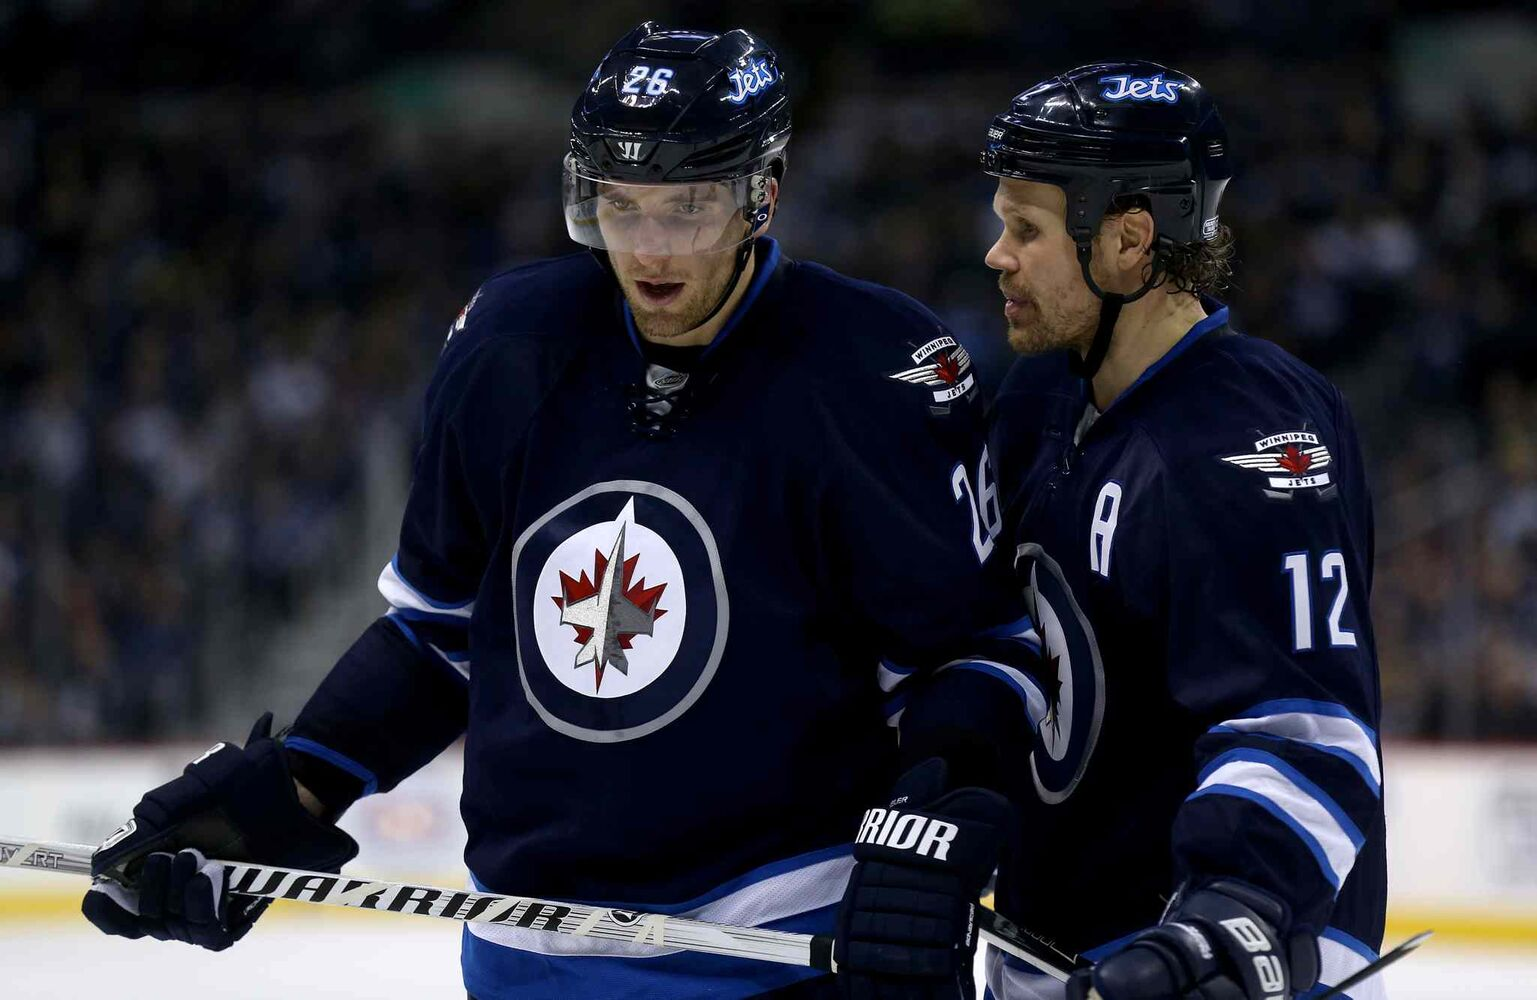 Winnipeg Jets' Blake Wheeler (26) and Olli Jokinen (12) skate together during second period hockey action against the Columbus Blue Jackets' at MTS Centre Saturday. (Trevor Hagan / Winnipeg Free Press)